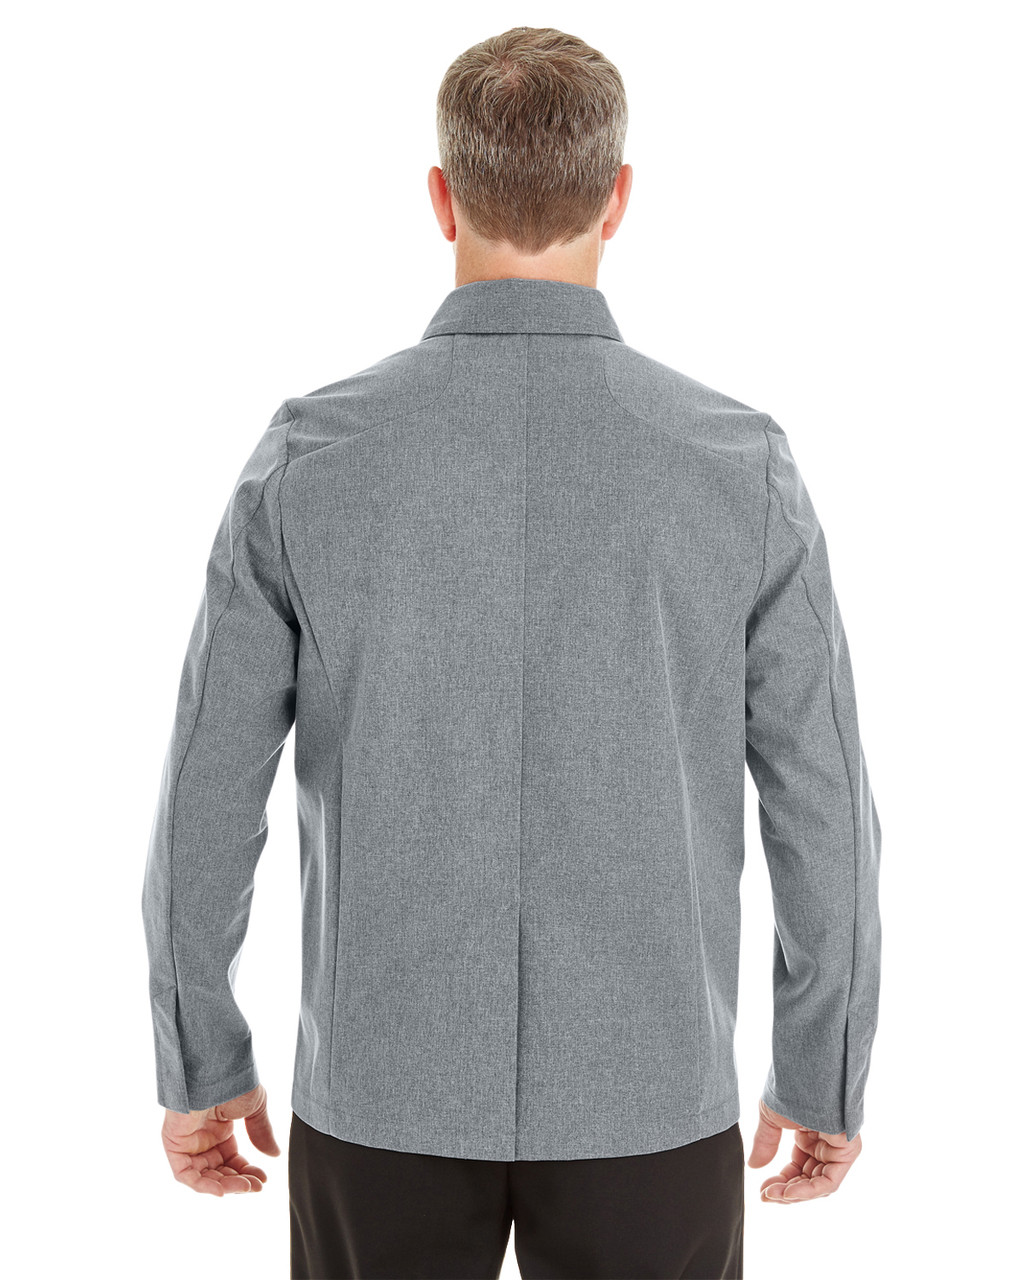 City Grey - Back- NE705 Ash City - North End Men's Edge Soft Shell Jacket with Fold-Down Collar | Blankclothing.ca